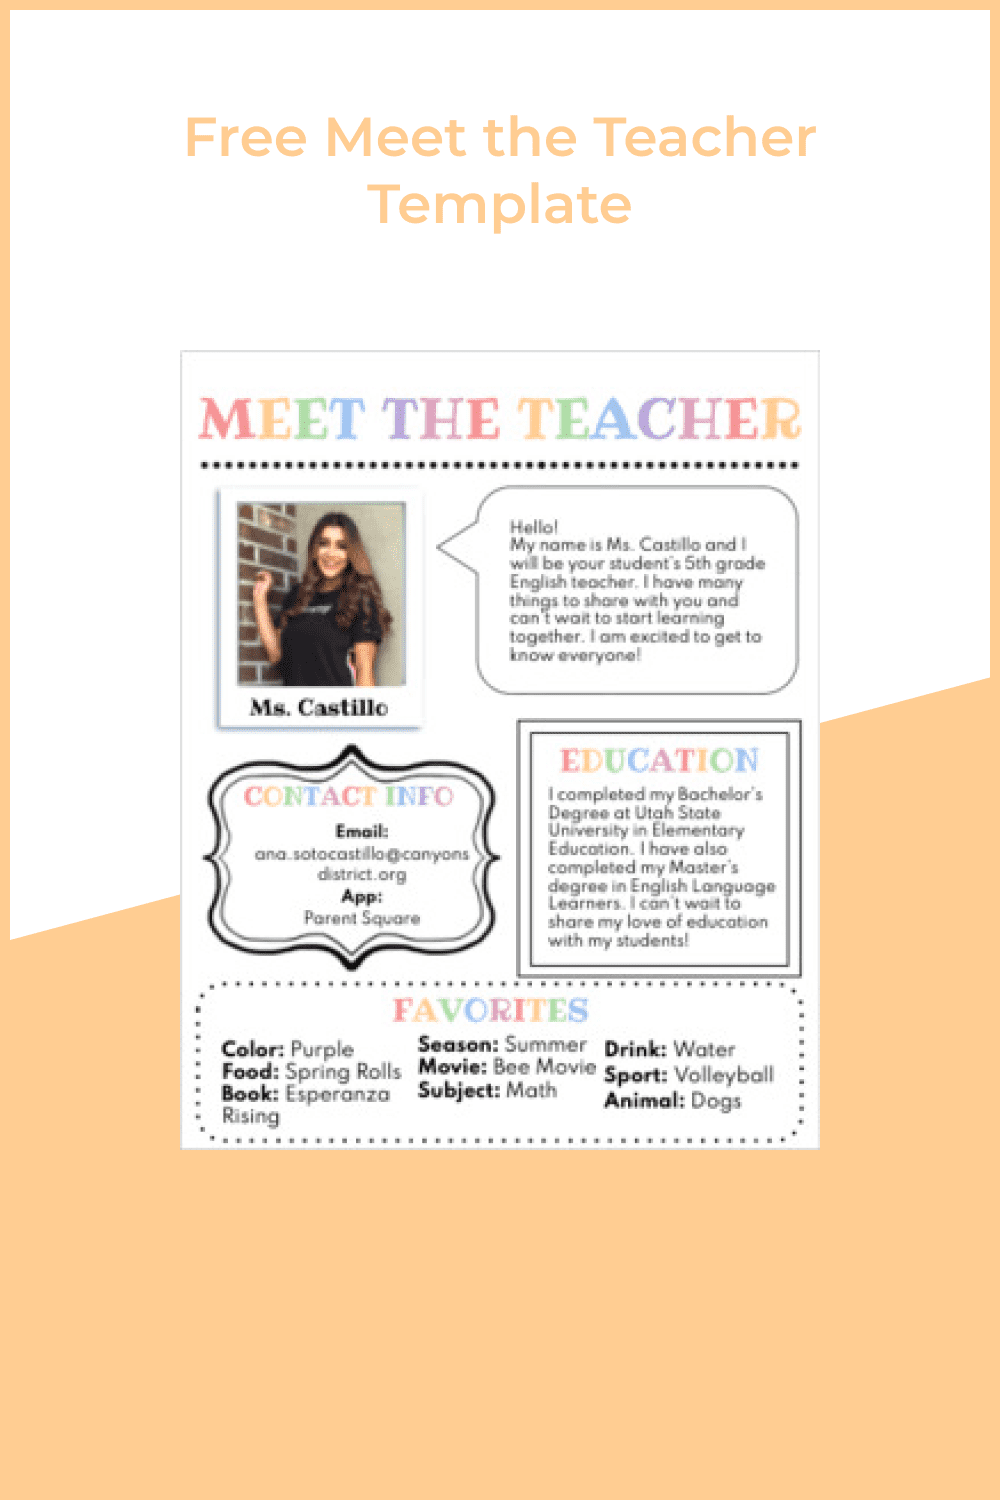 Colorful words on the meet the teacher template.